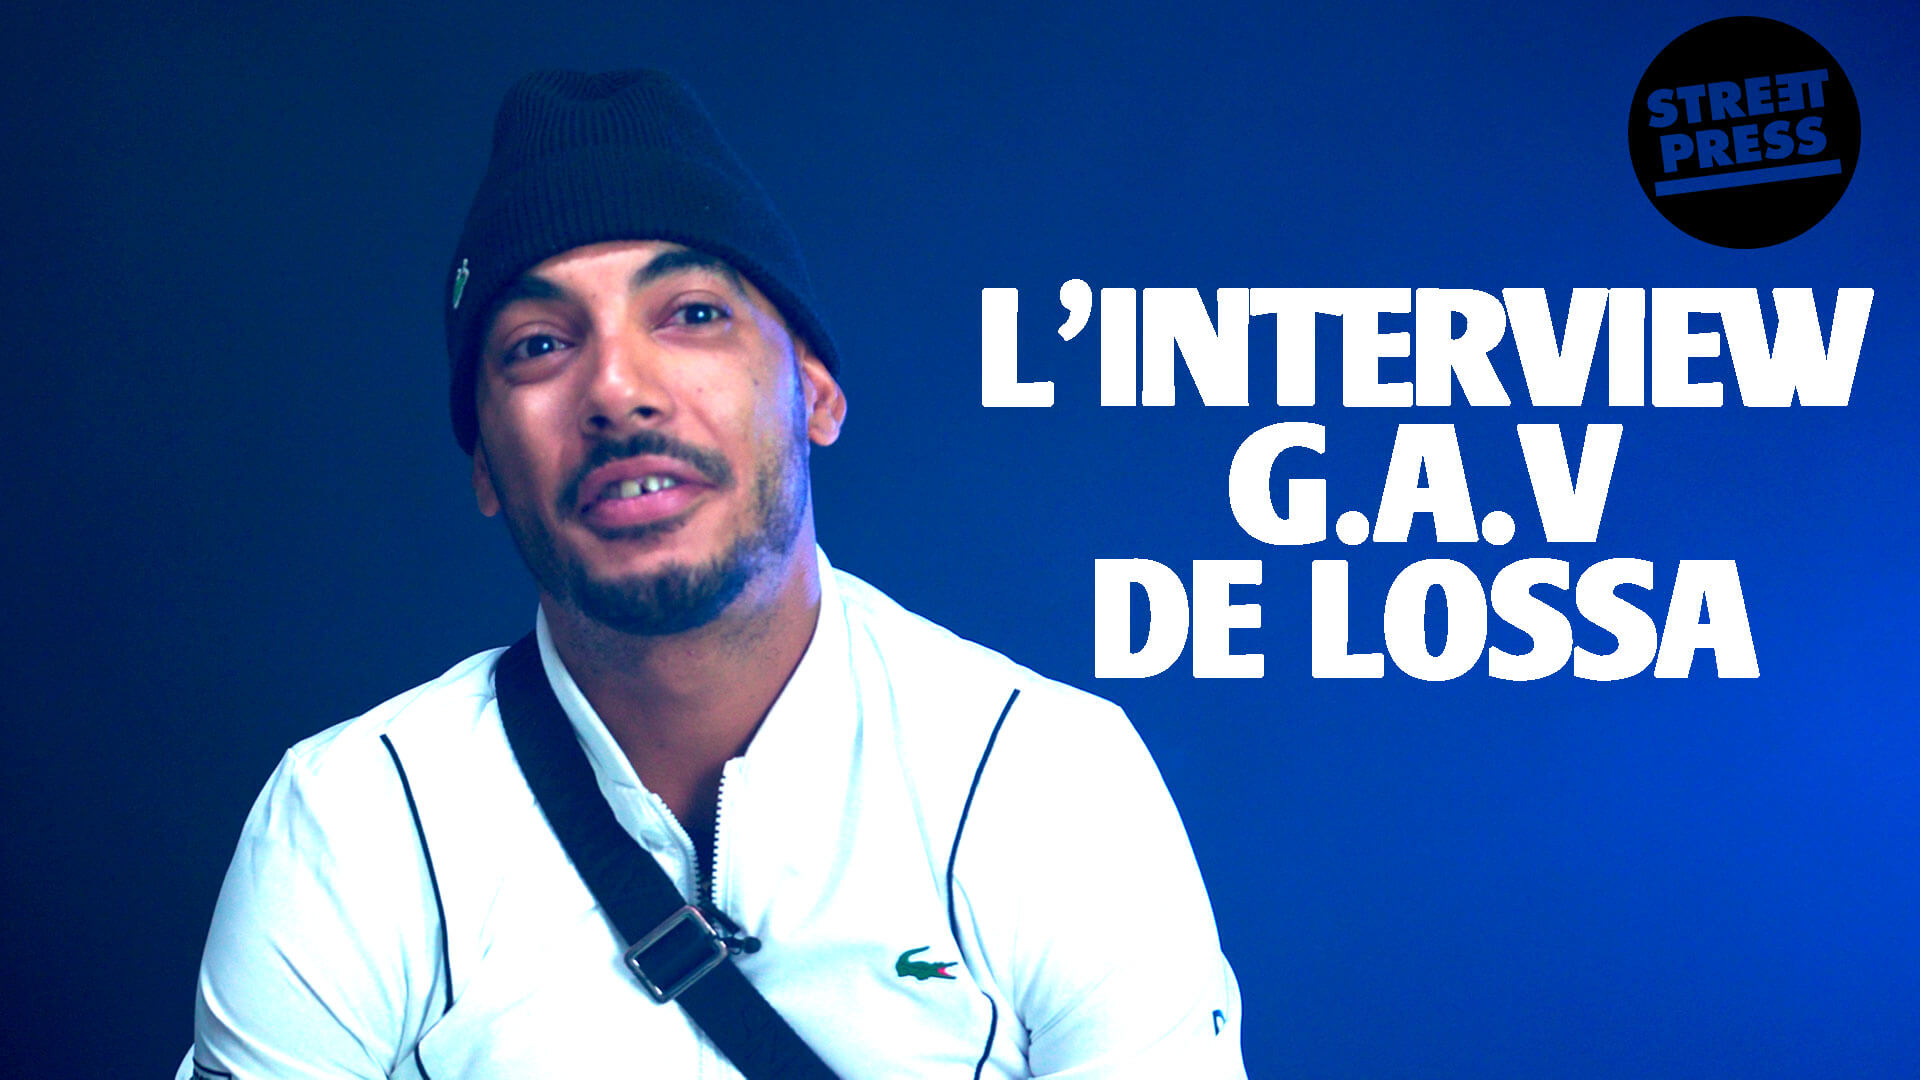 L'interview G.A.V de LOSSA